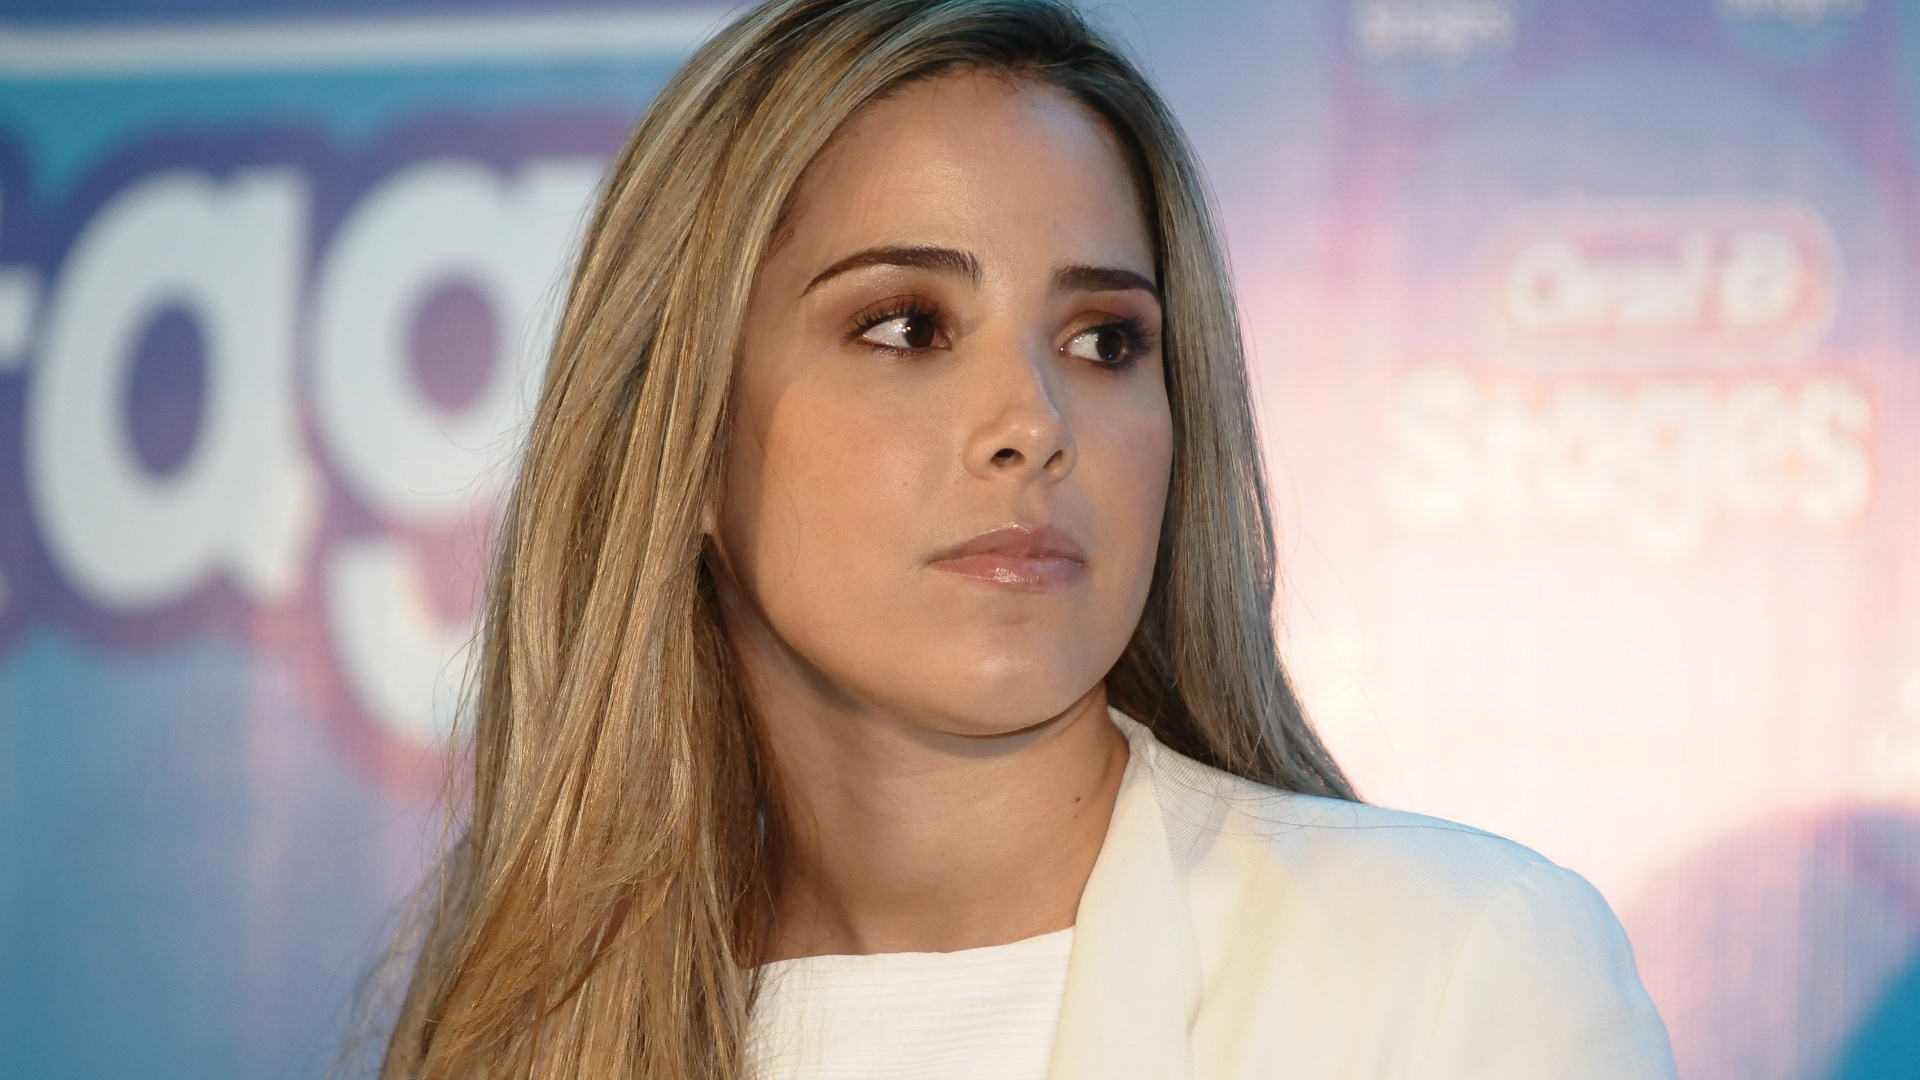 Wanessa comparece a evento da Oral-B e da Pampers (24/9/12)